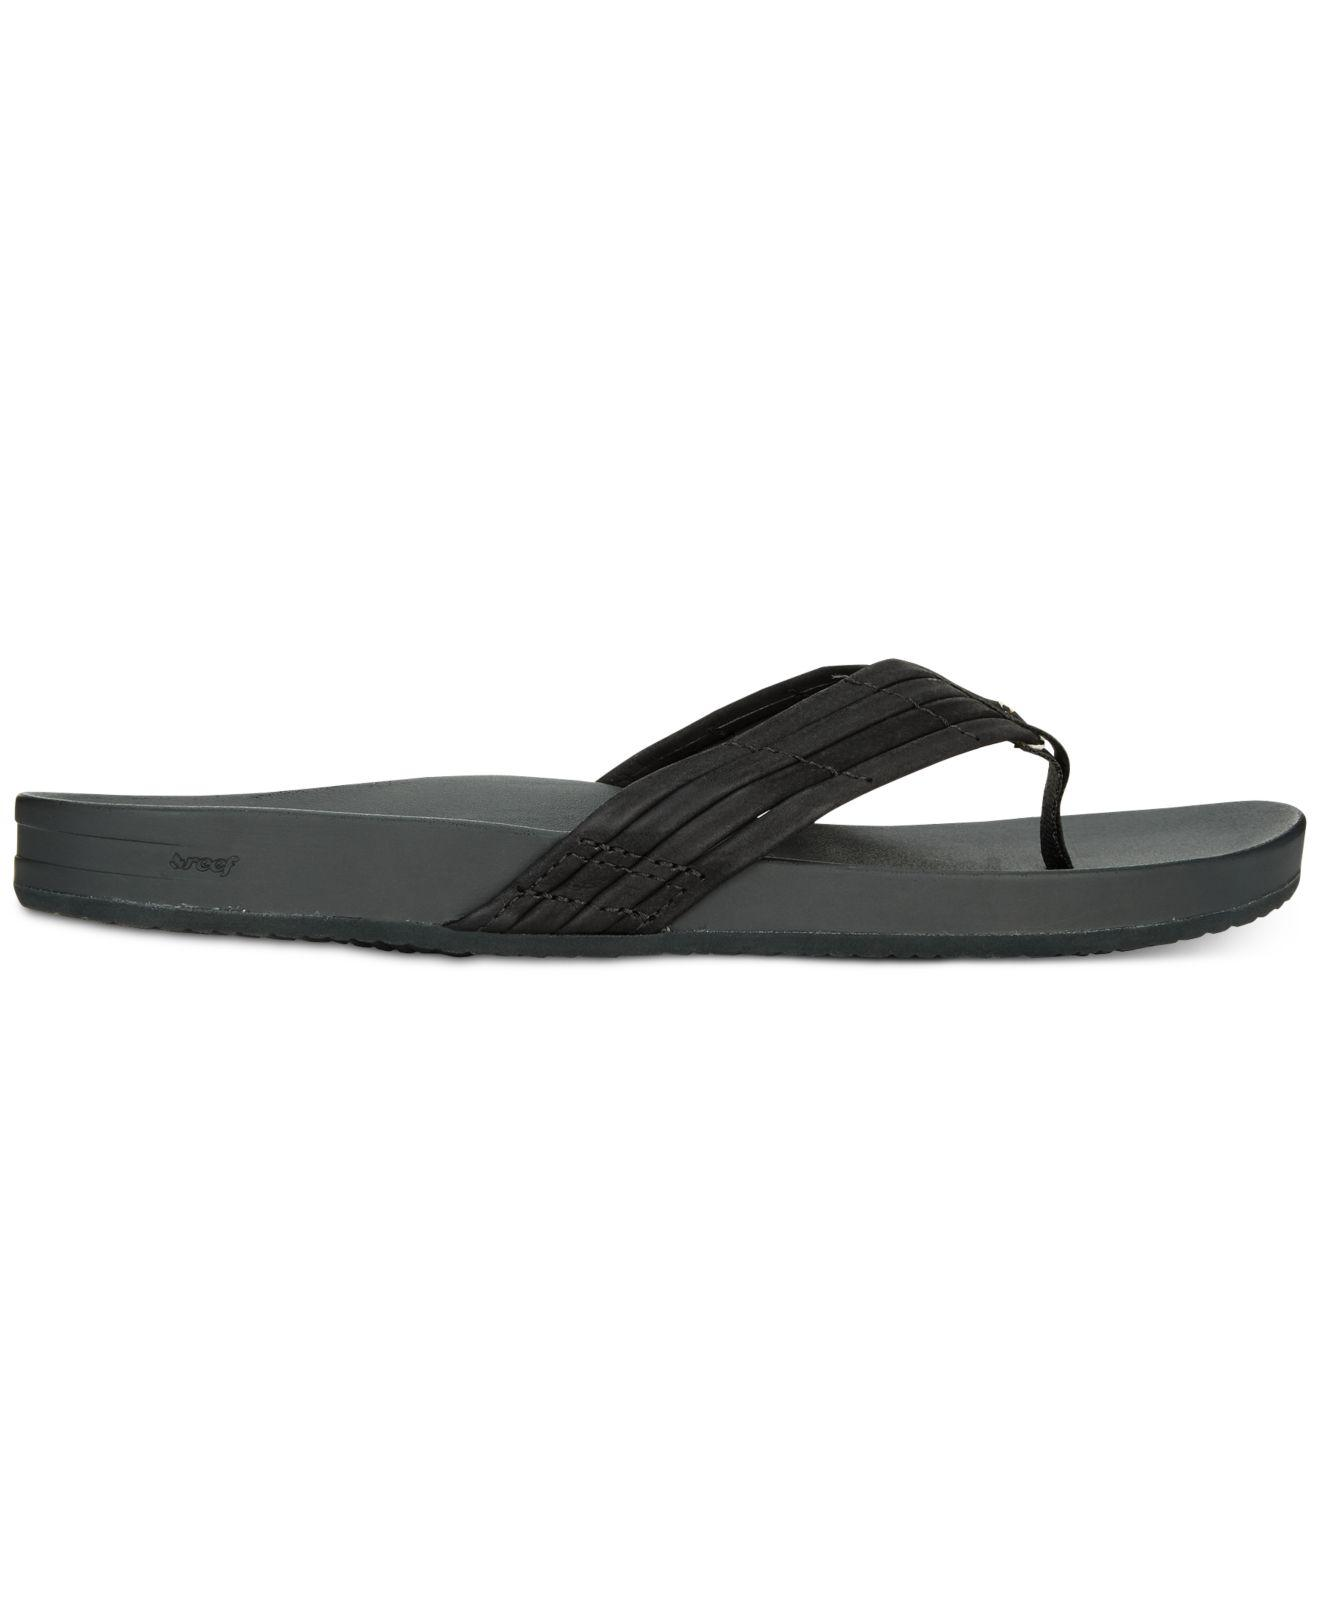 88c435952f09 Reef Cushion Bounce Sunny Flip-flop Sandals in Black - Lyst